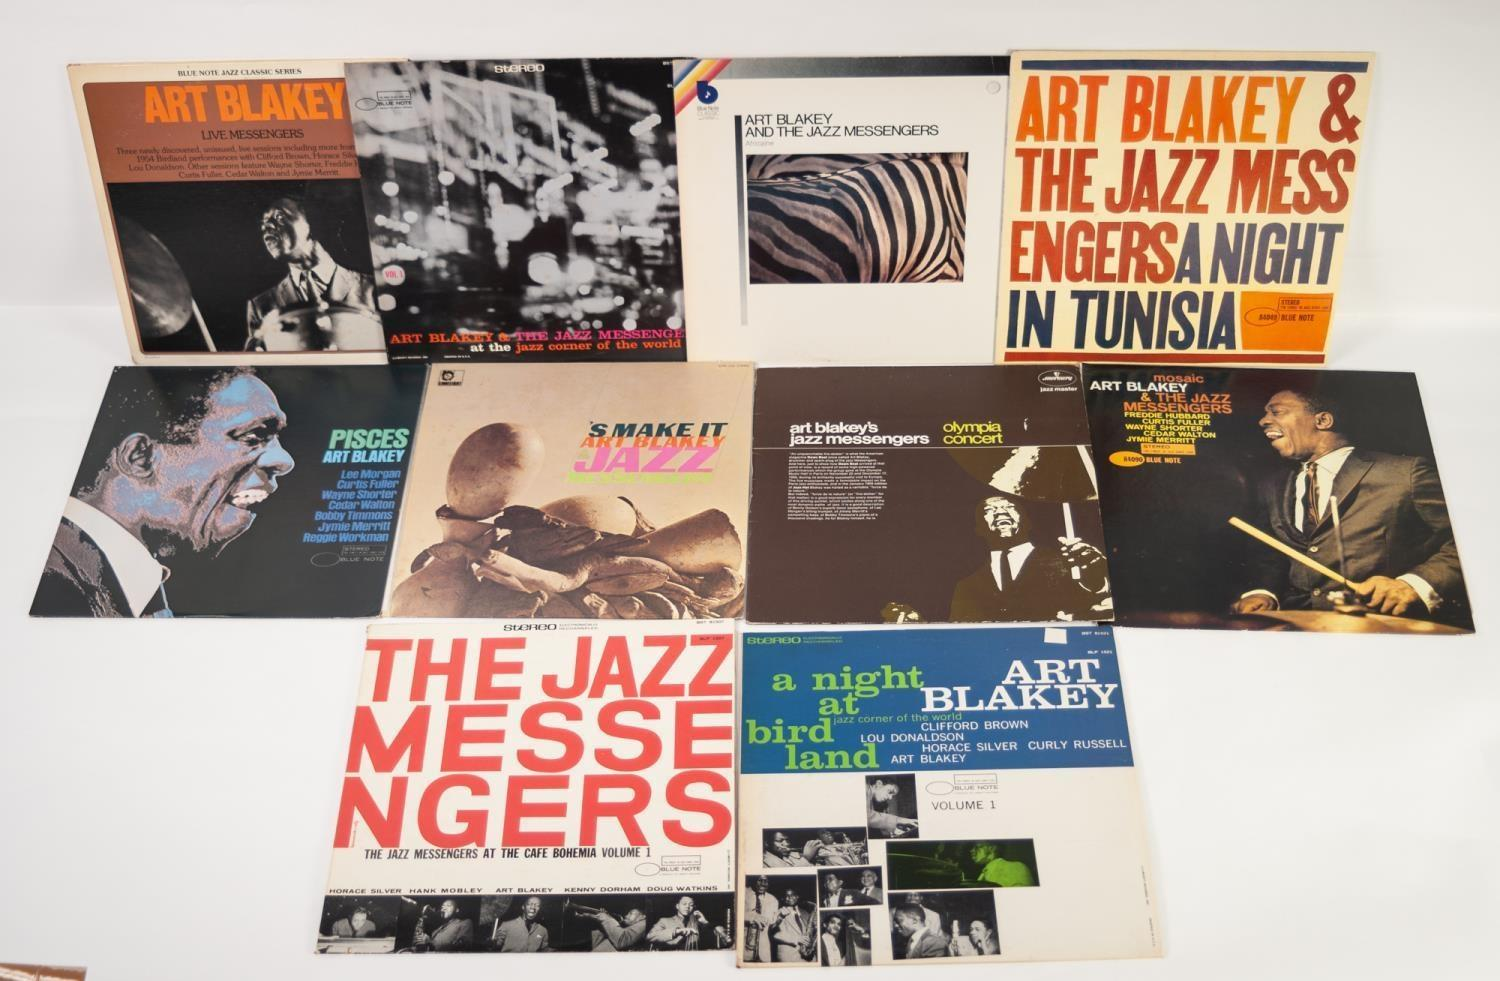 JAZZ, VINYL RECORDS, B IS FOR ART BLAKEY AND THE JAZZ MESSENGERS-THE FREEDOM RIDER, Blue Note (BLP - Image 2 of 2